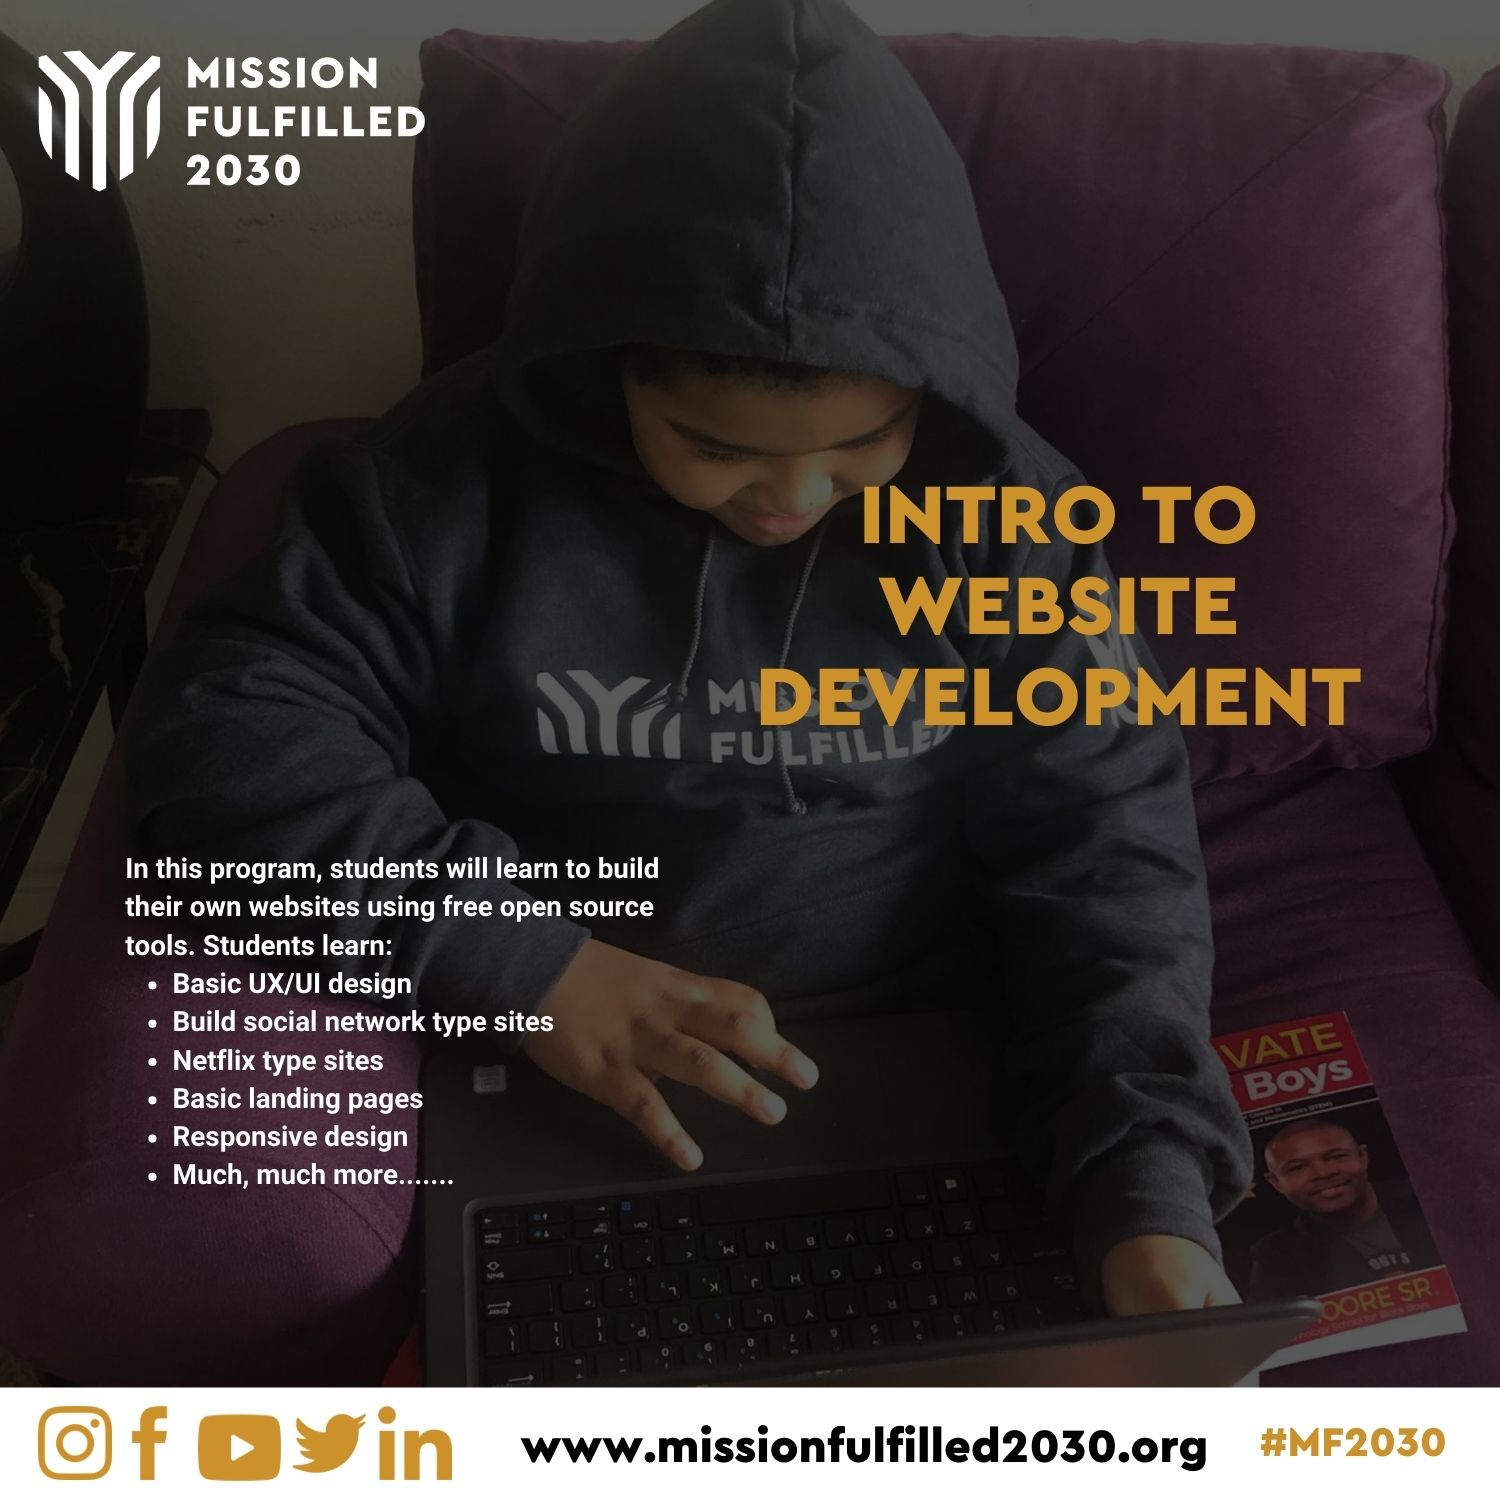 Mission Fulfilled 2030 Intro to Website Development Program